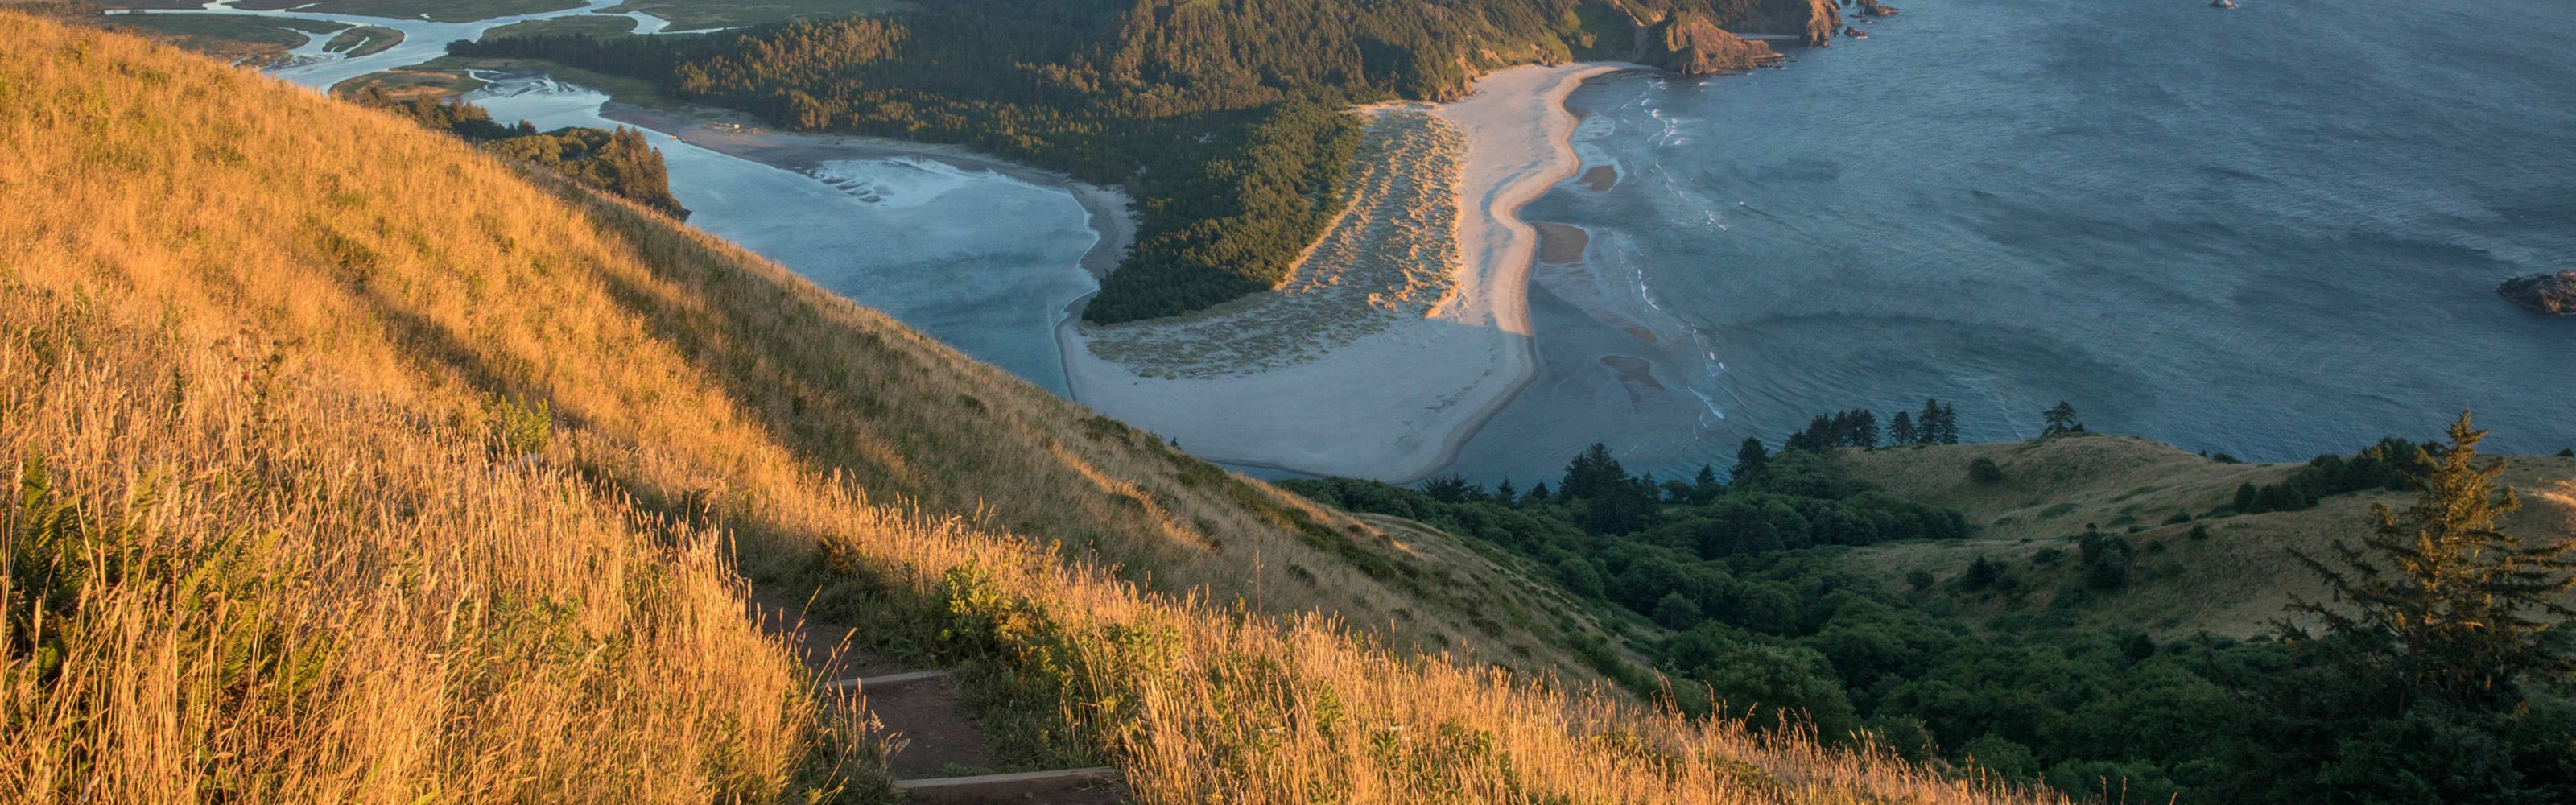 Cascade Head trail overlooking the Pacific Ocean